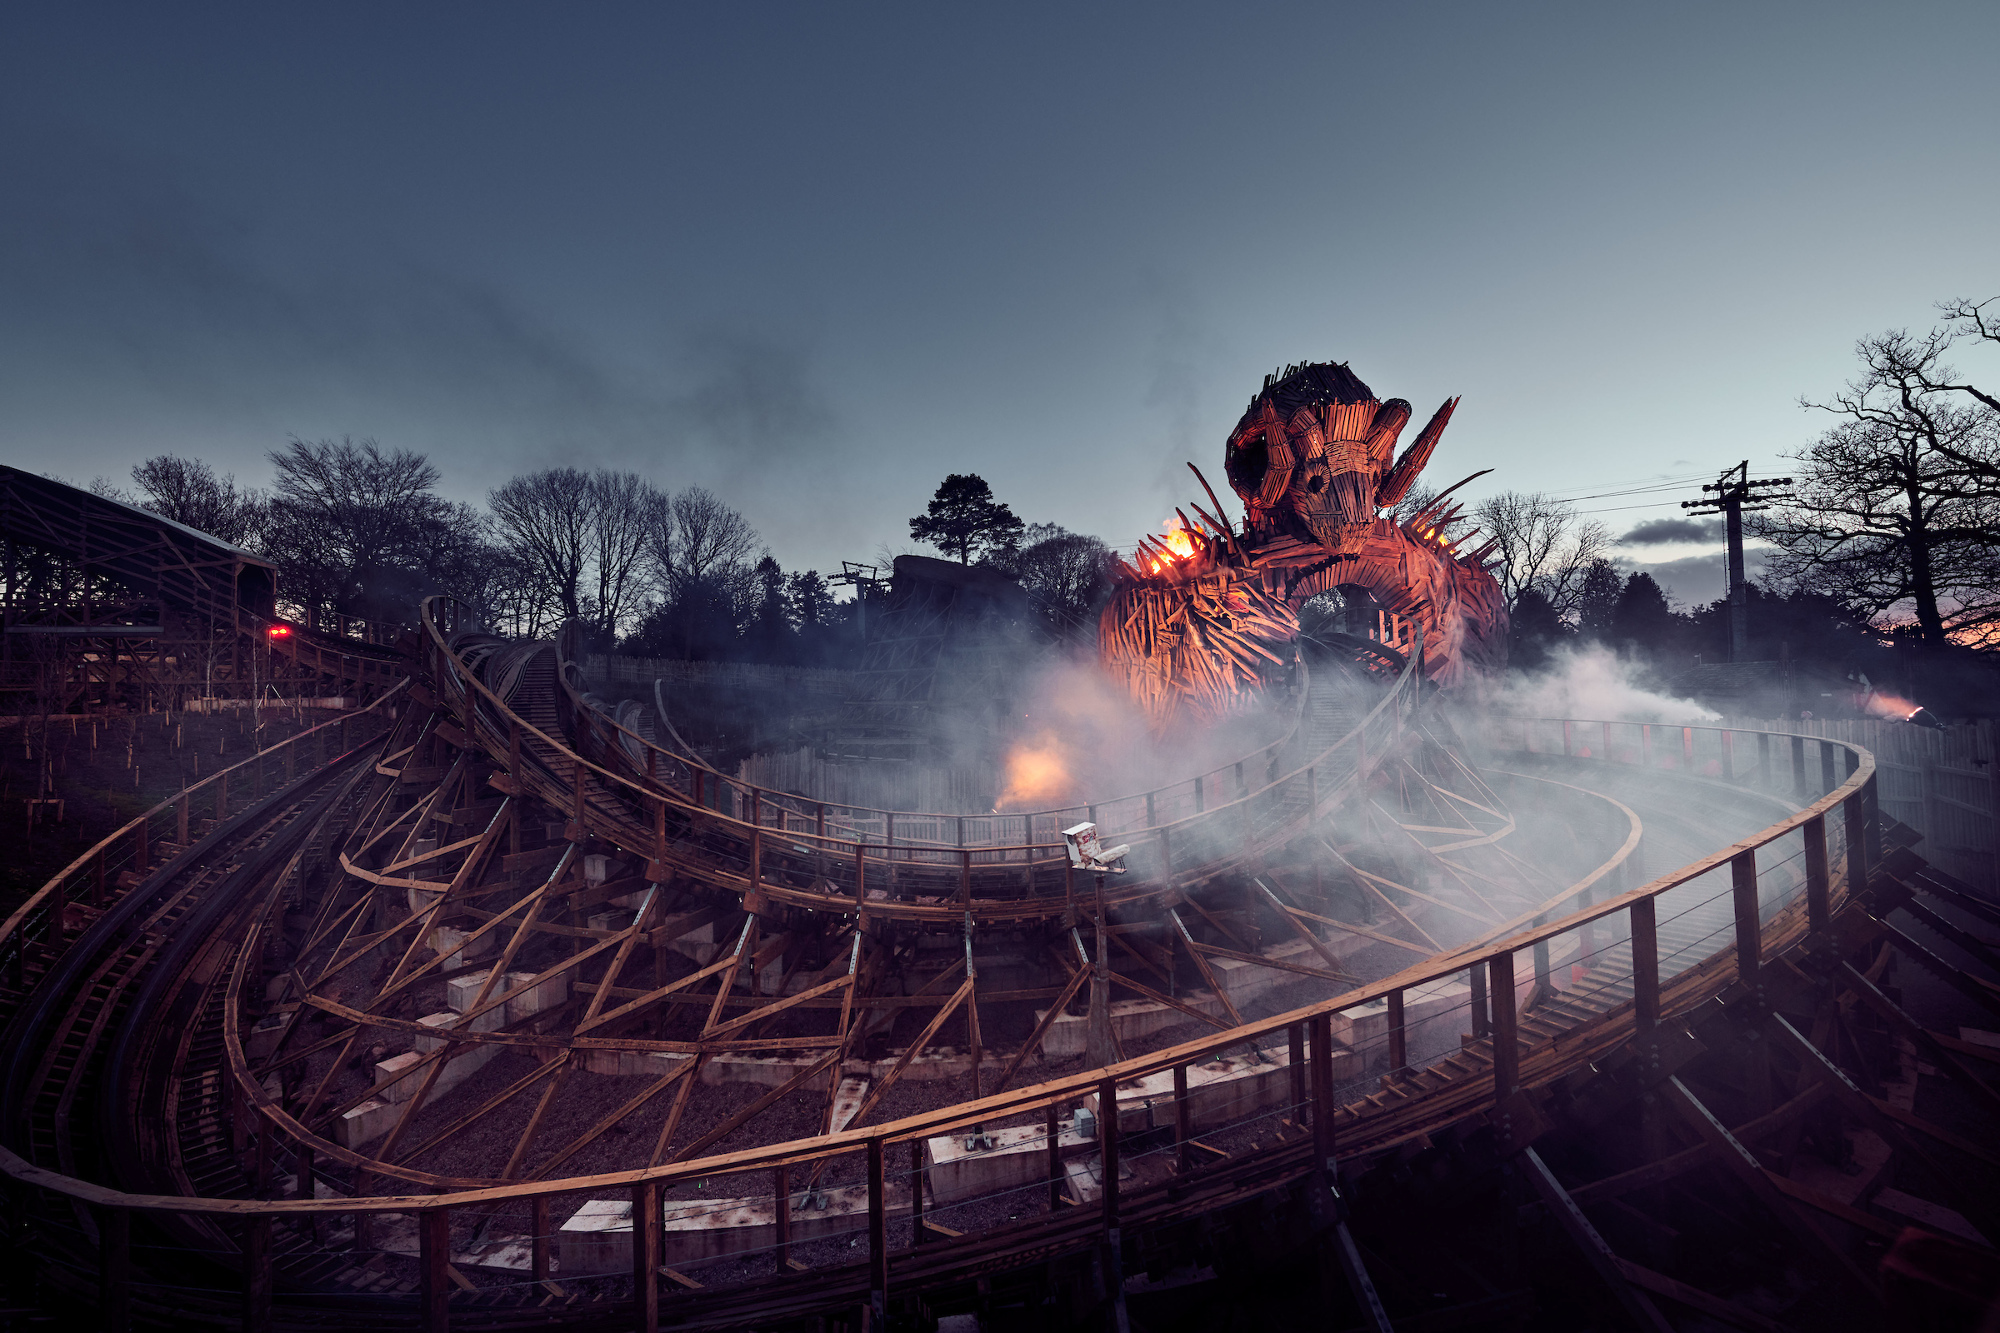 The ride is based on the 1973 horror movie starring Edward Woodward and Christopher Lee.